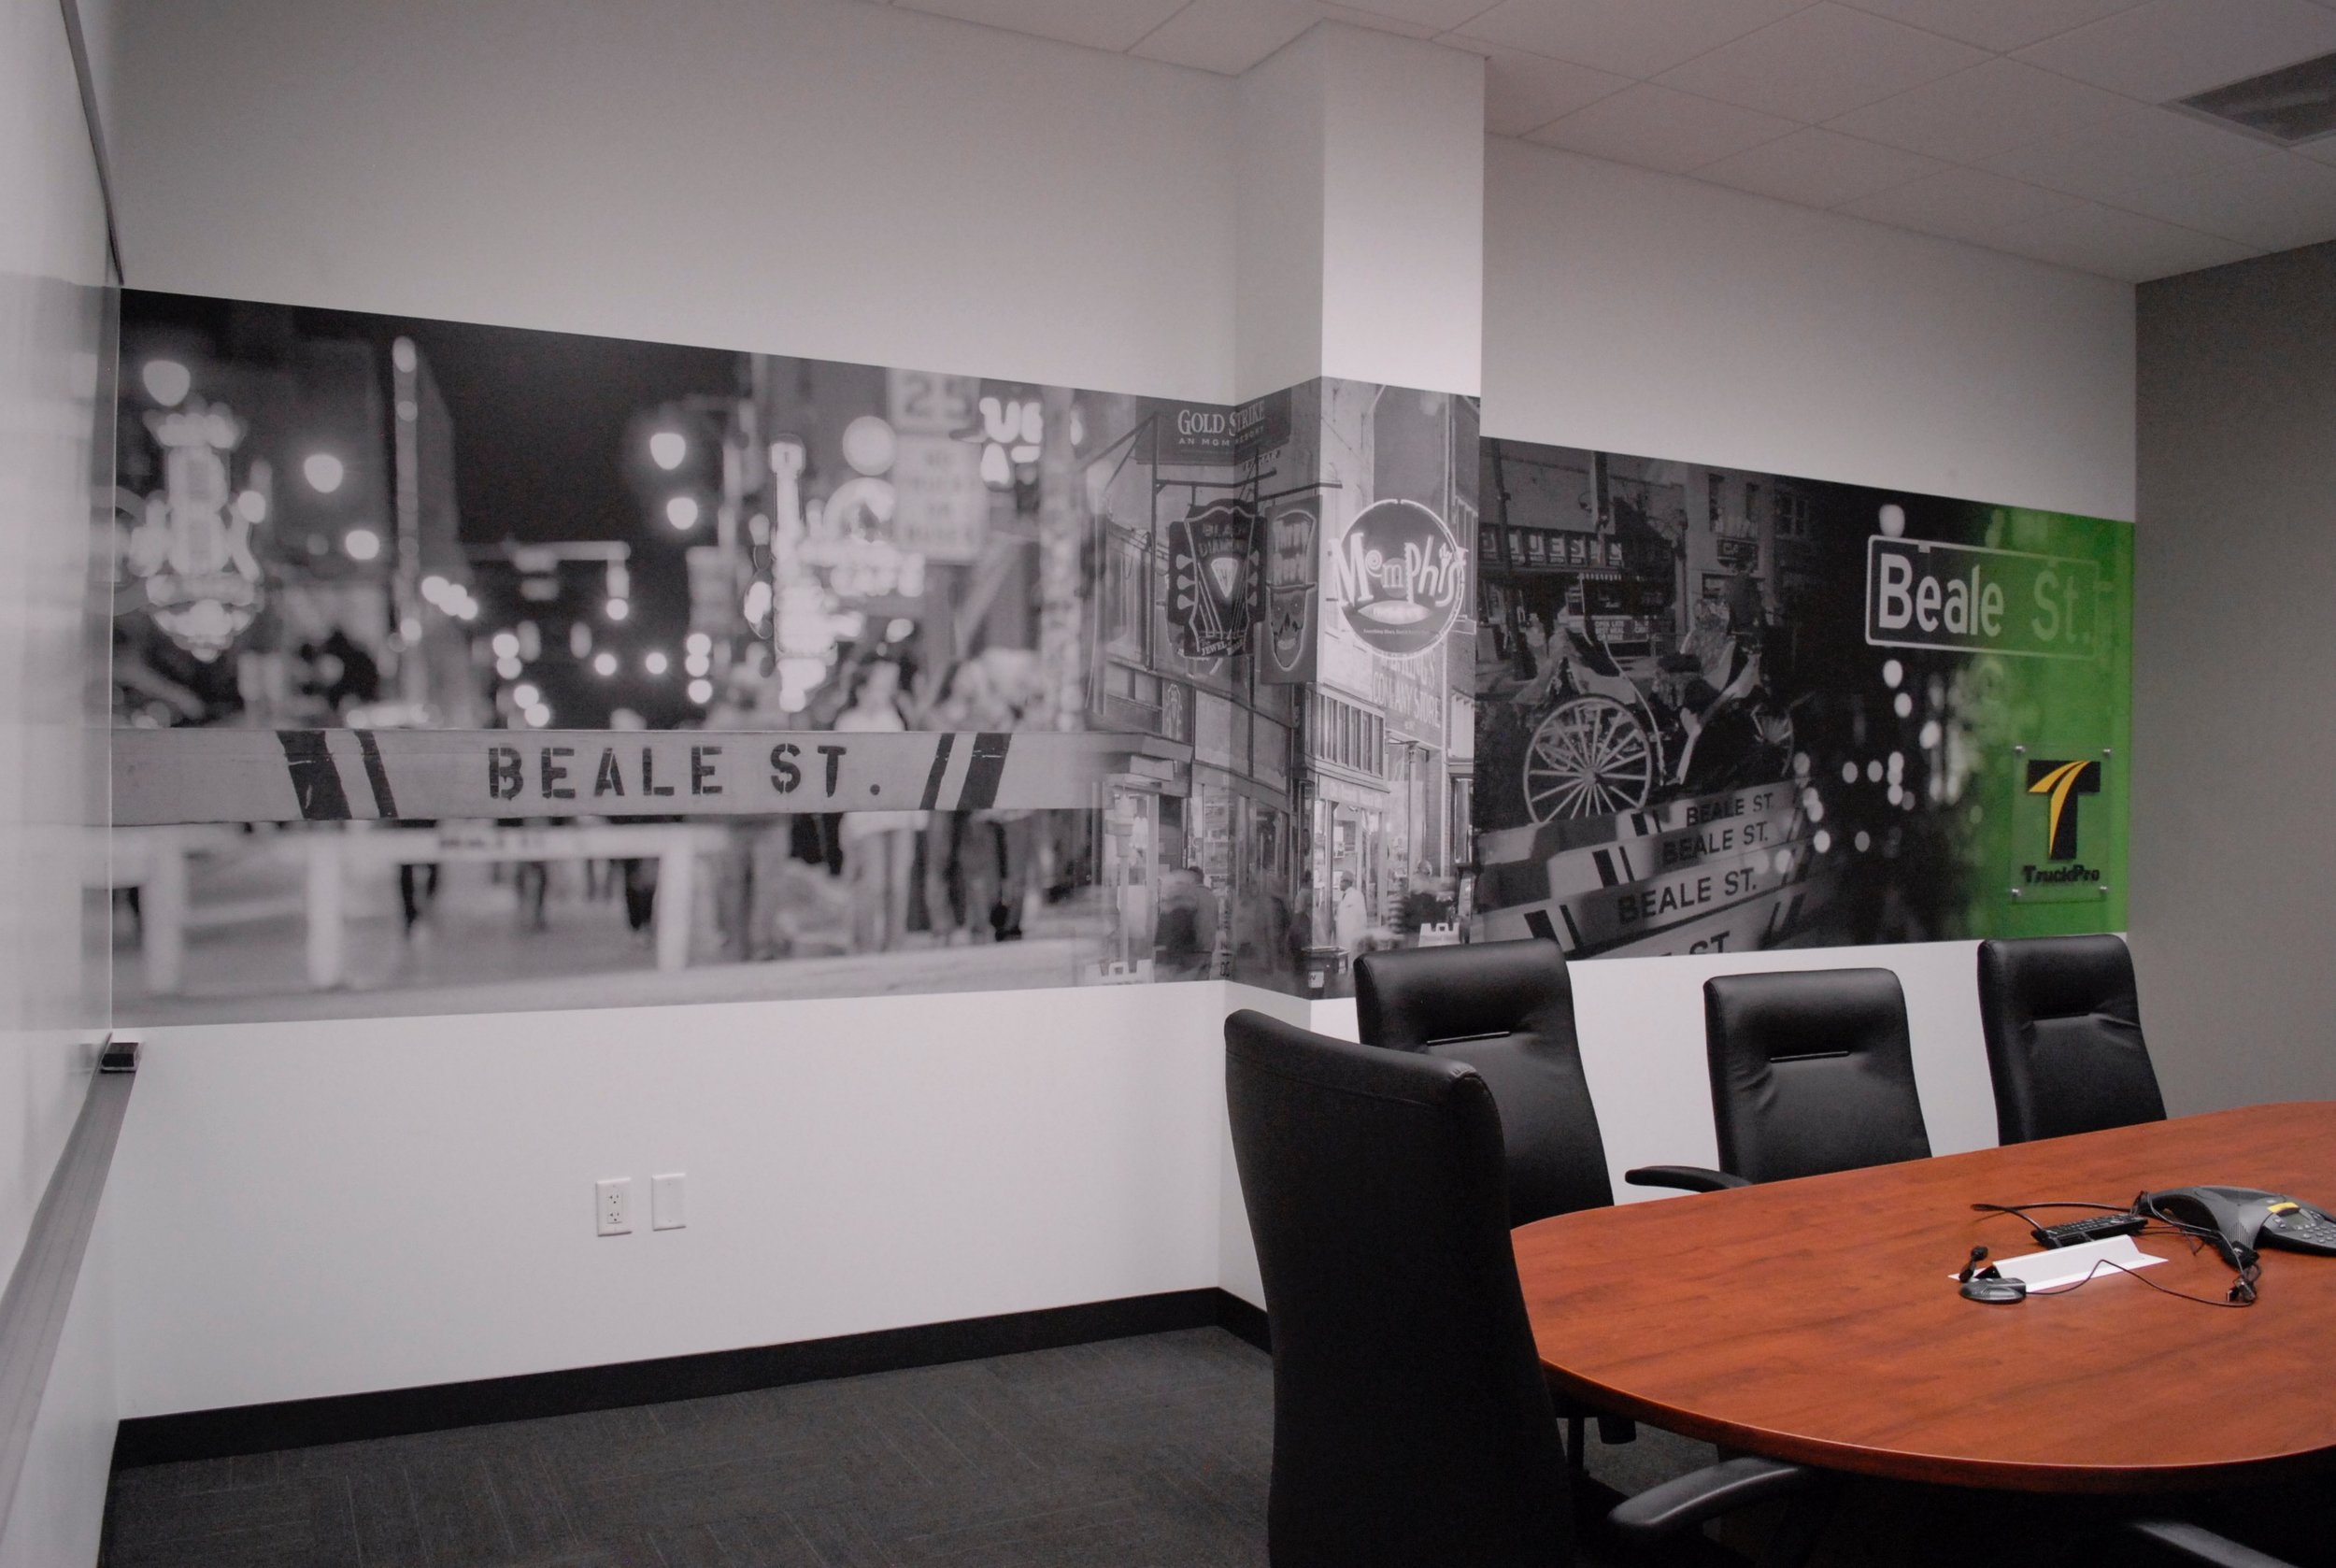 TruckPro_Beale-Room_Finished-Product_Environmental-Graphics_Dreamcapture_Memphis-TN